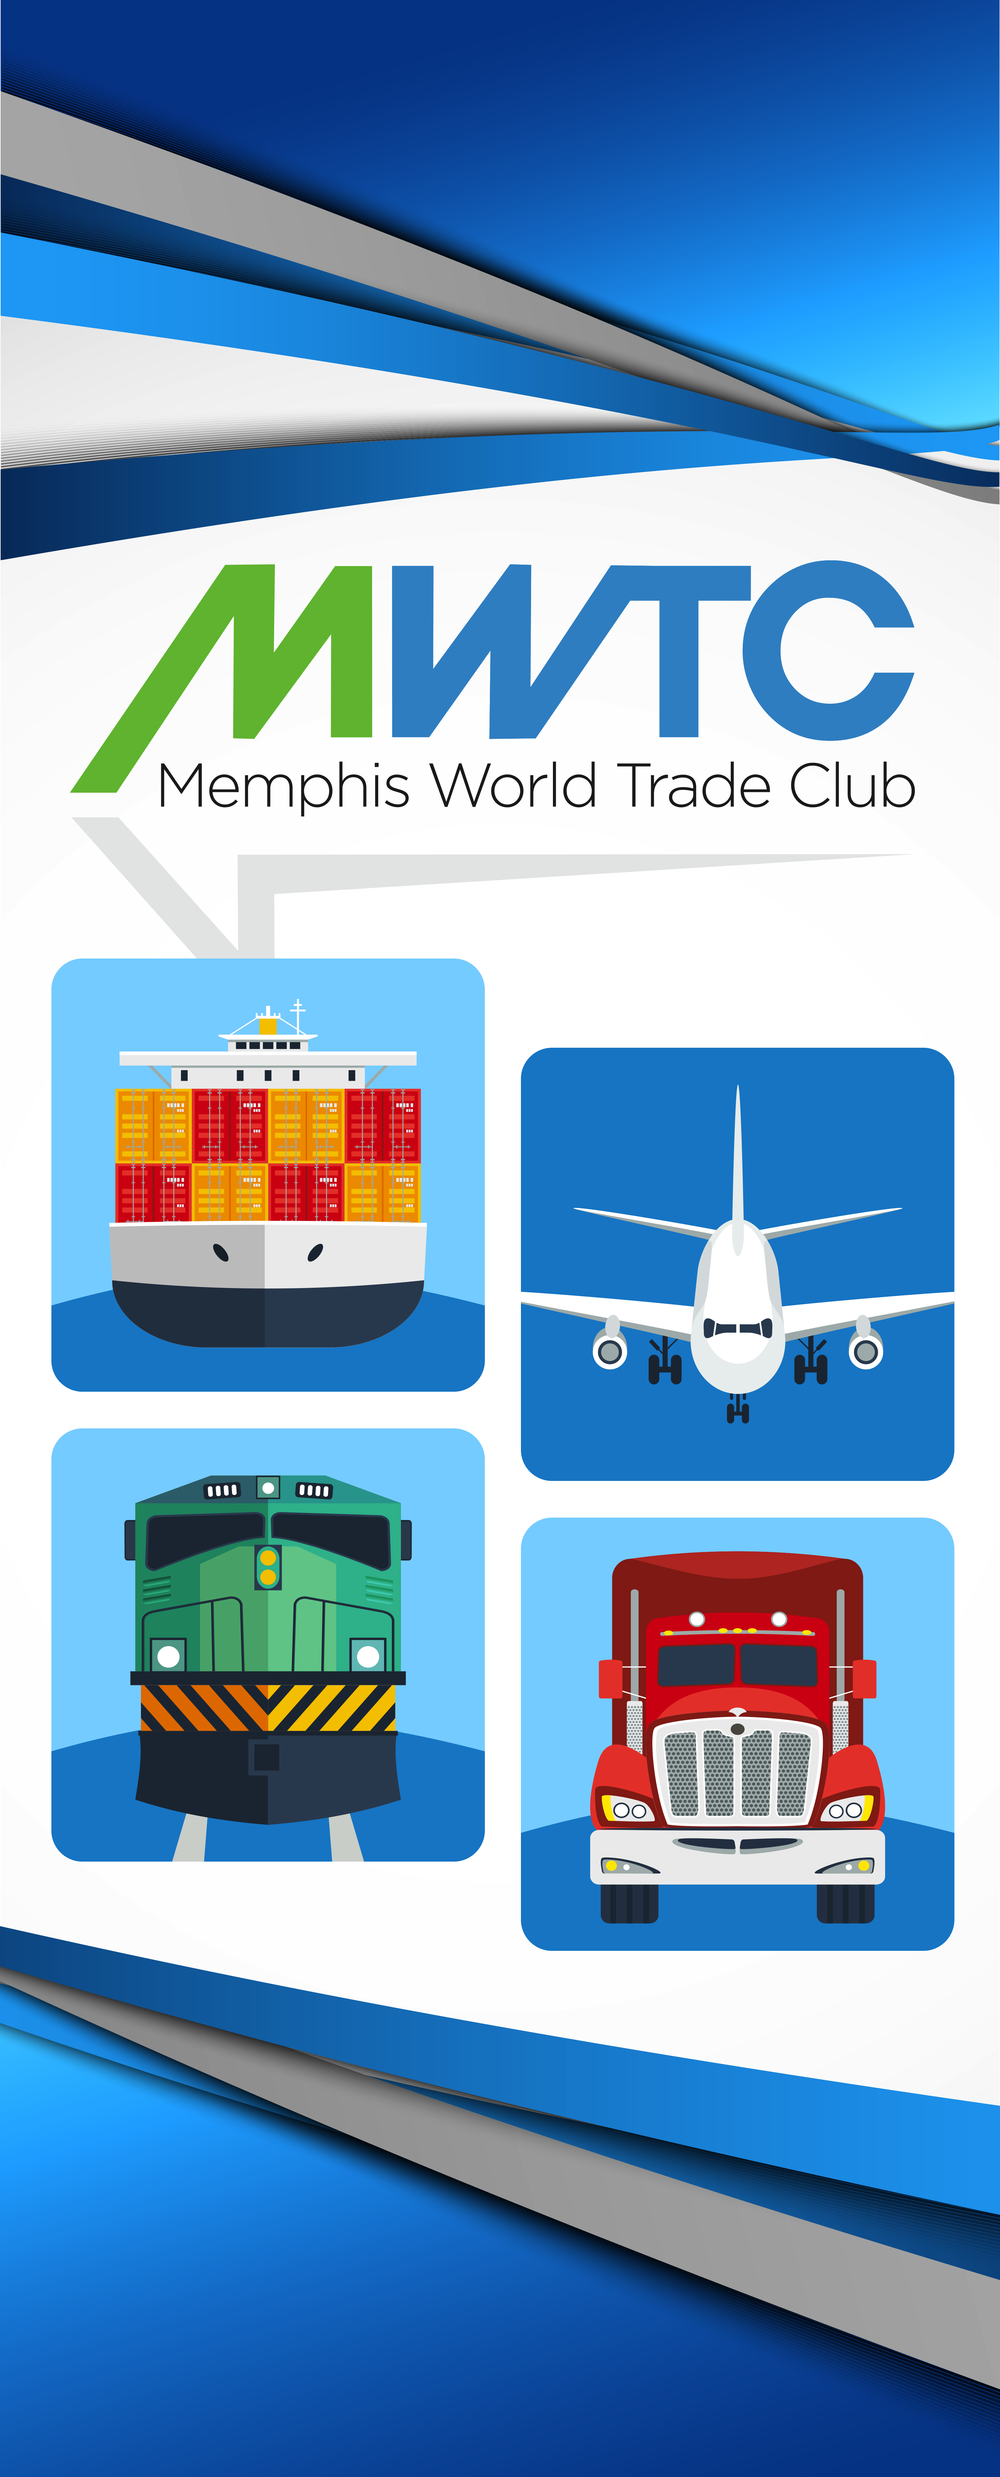 Pull Up Banner - Memphis World Trade Club